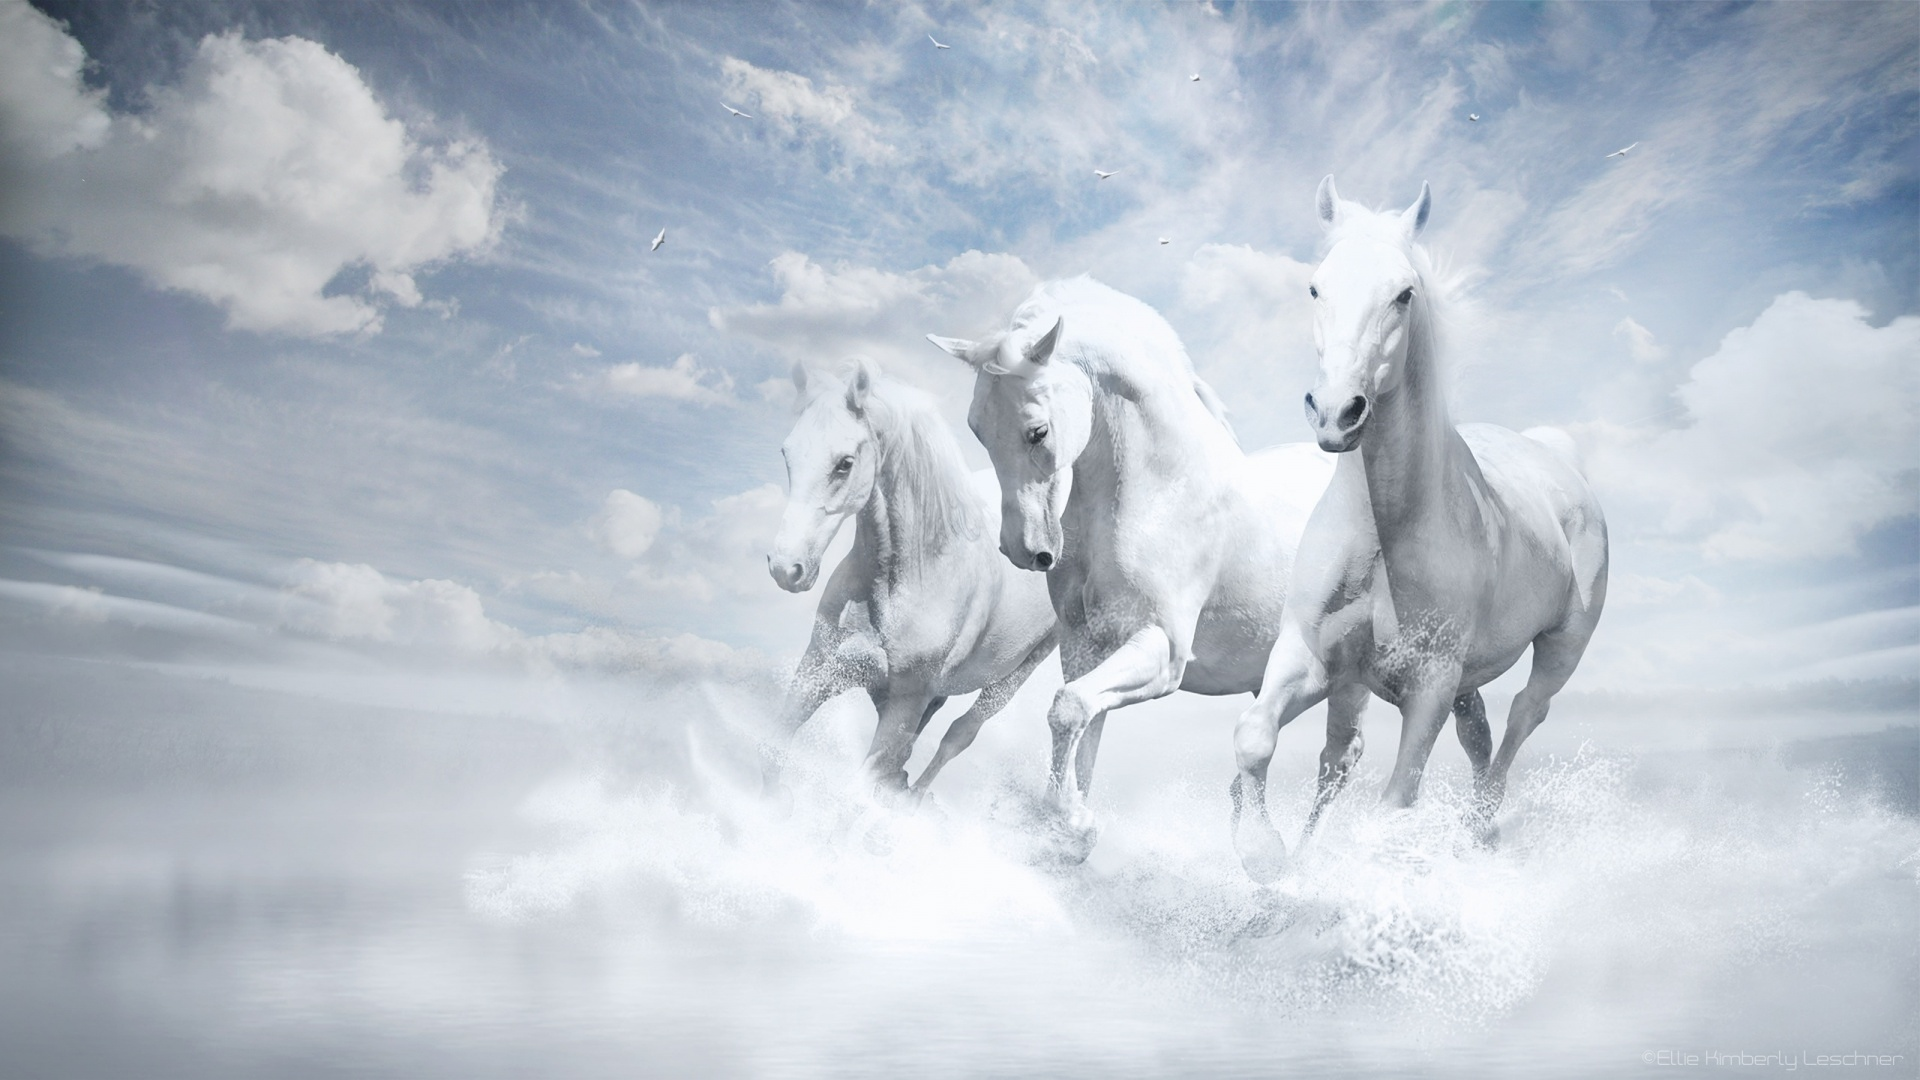 Fantasy Horse Running White Wallpaper Resolution 1920x1080 Id 857405 Wallha Com